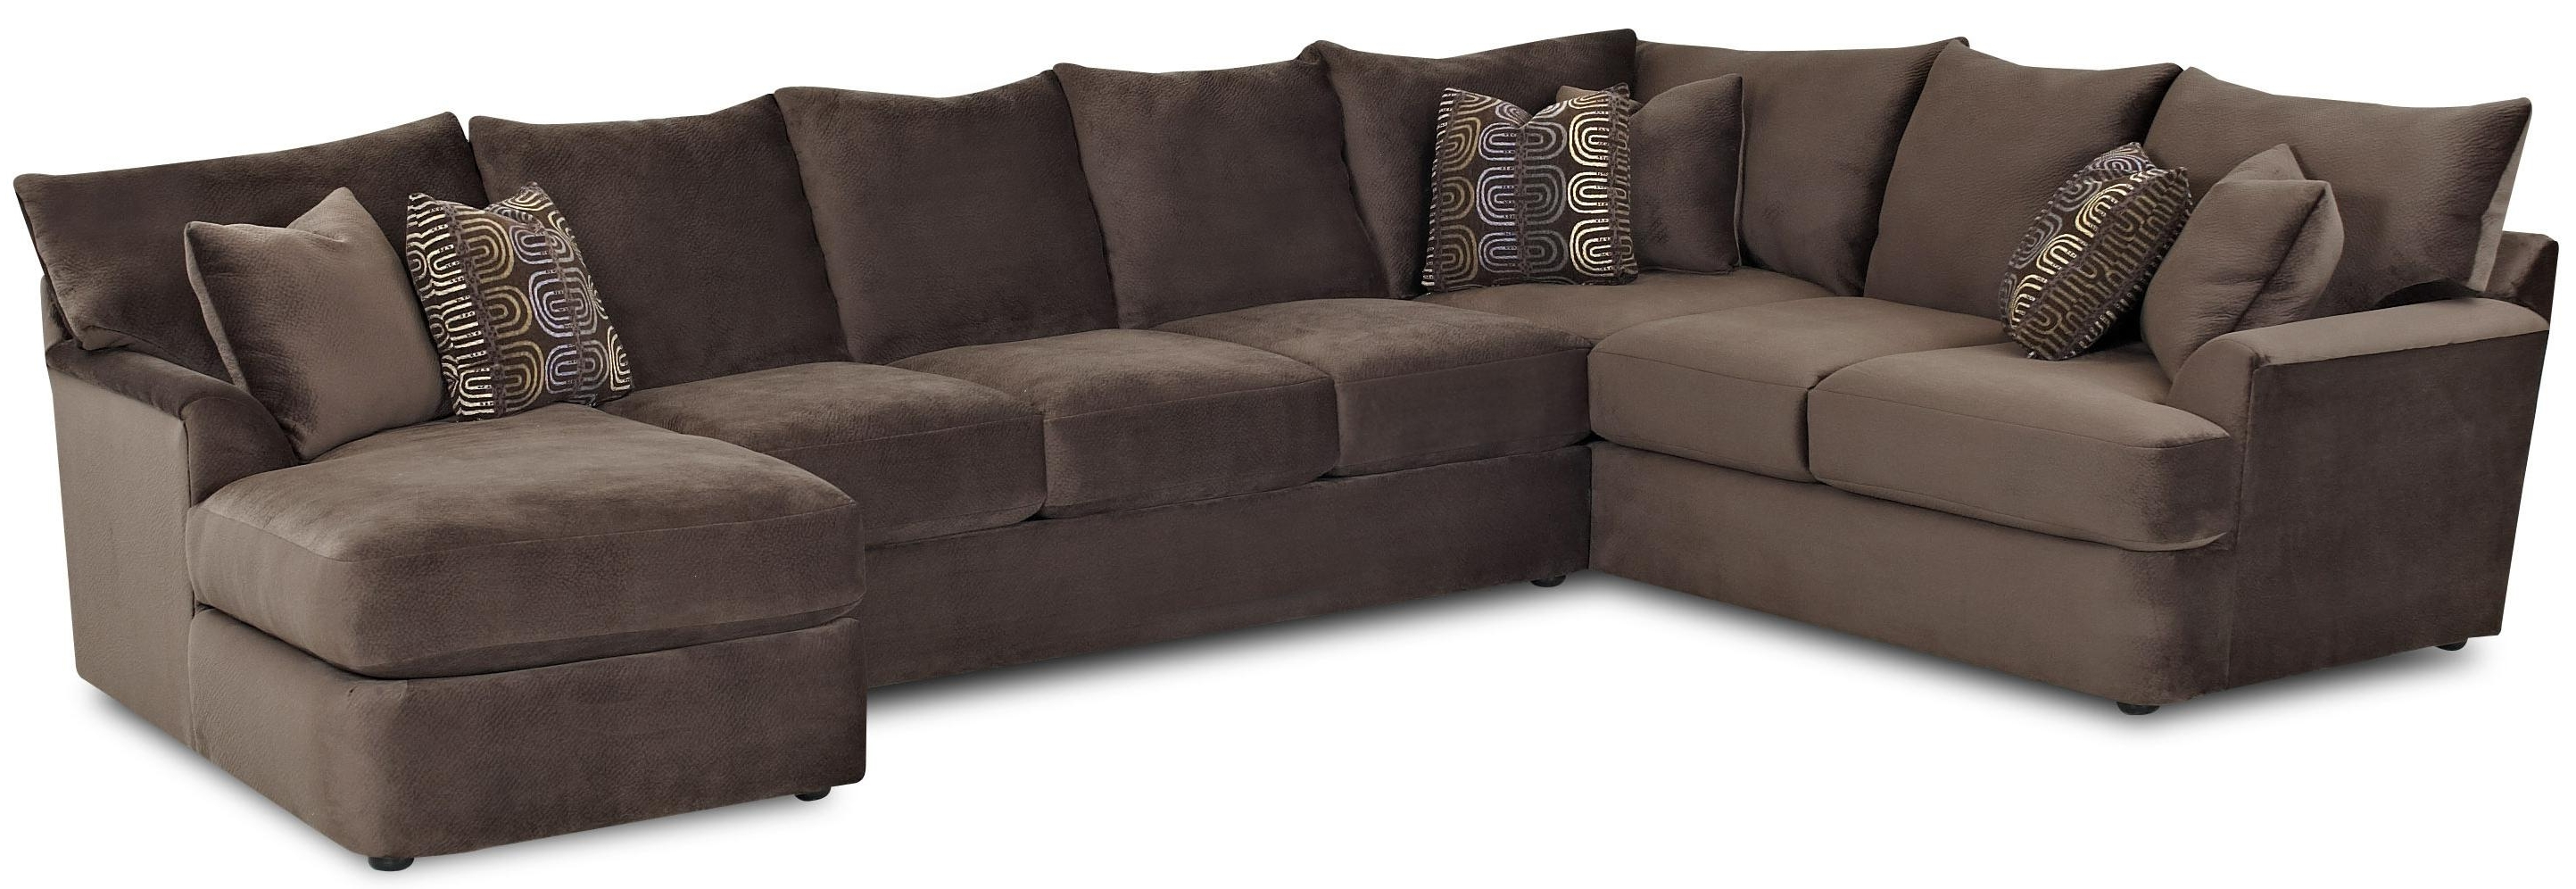 Furniture Buy Sectional Sofa Large L Shaped Sofa Comfy Couch Cheap Throughout Fashionable Leather L Shaped Sectional Sofas (View 15 of 15)